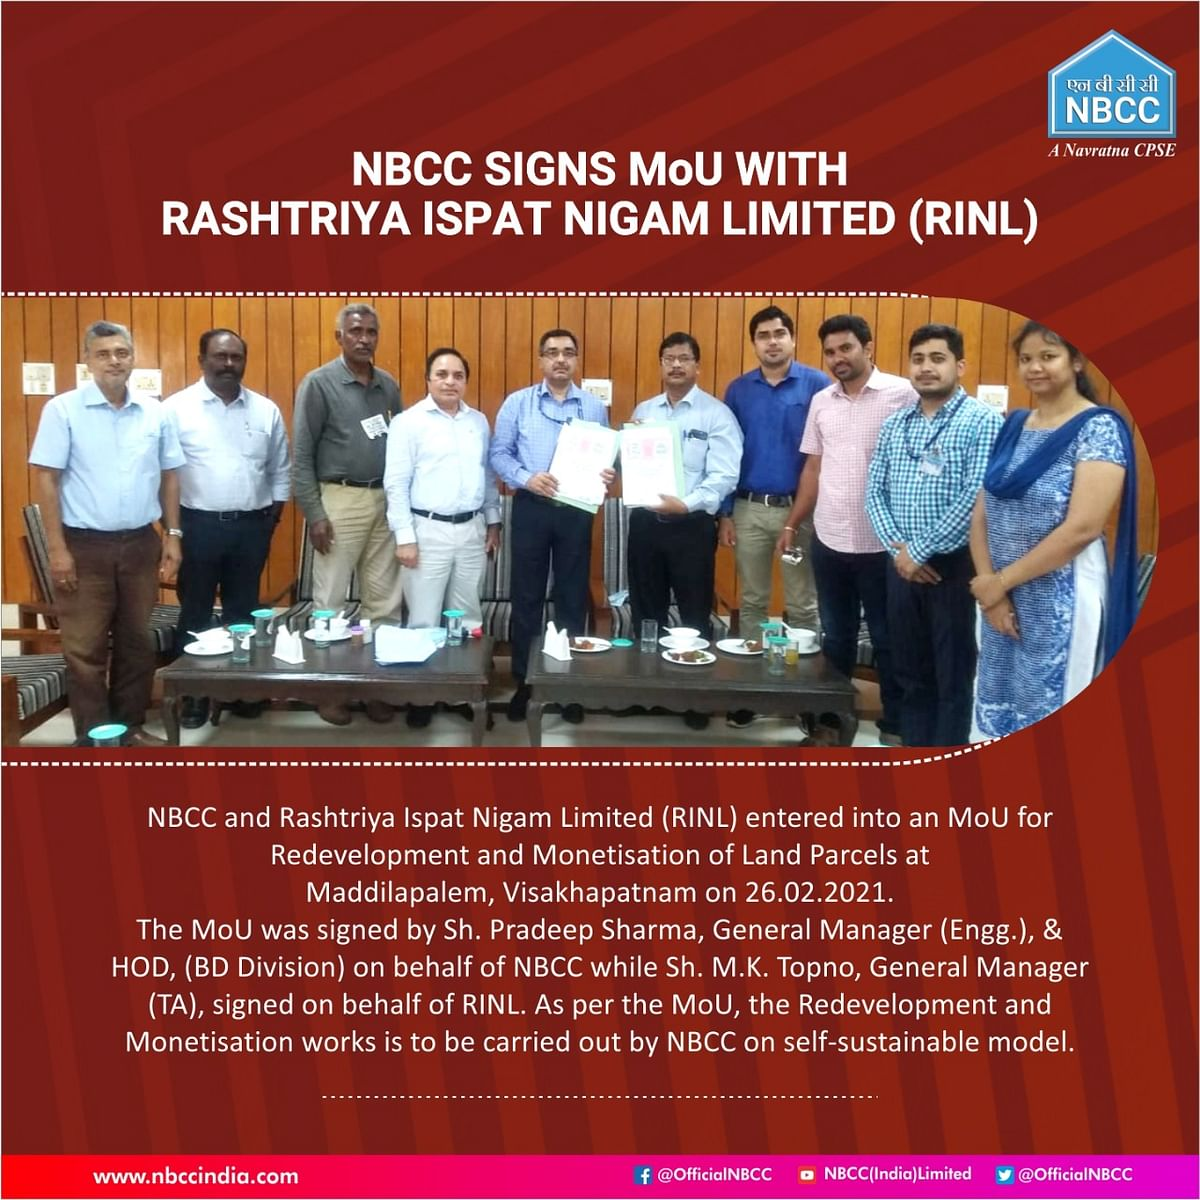 NBCC & RINL Sign MoU to Monetize Land in Visakhapatnam